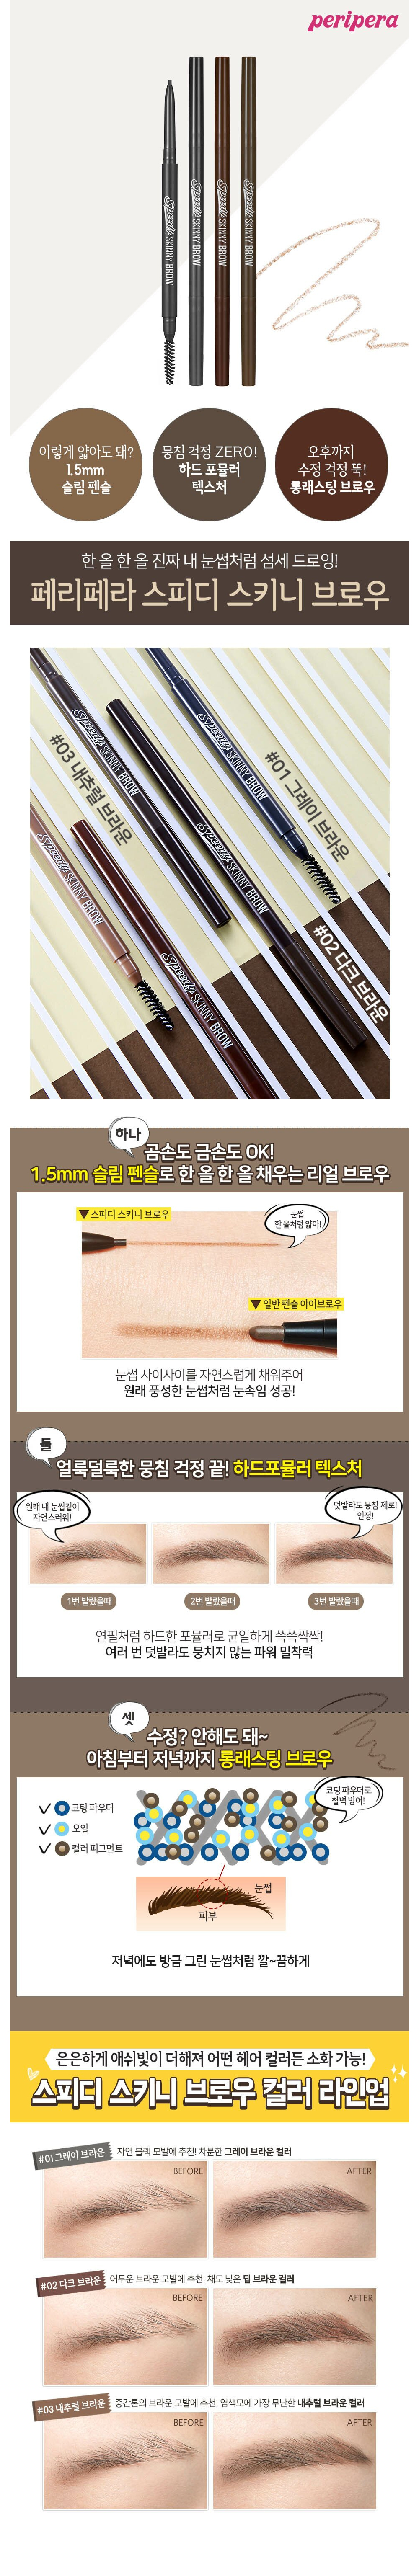 accessories oatmeal color image-S1L2